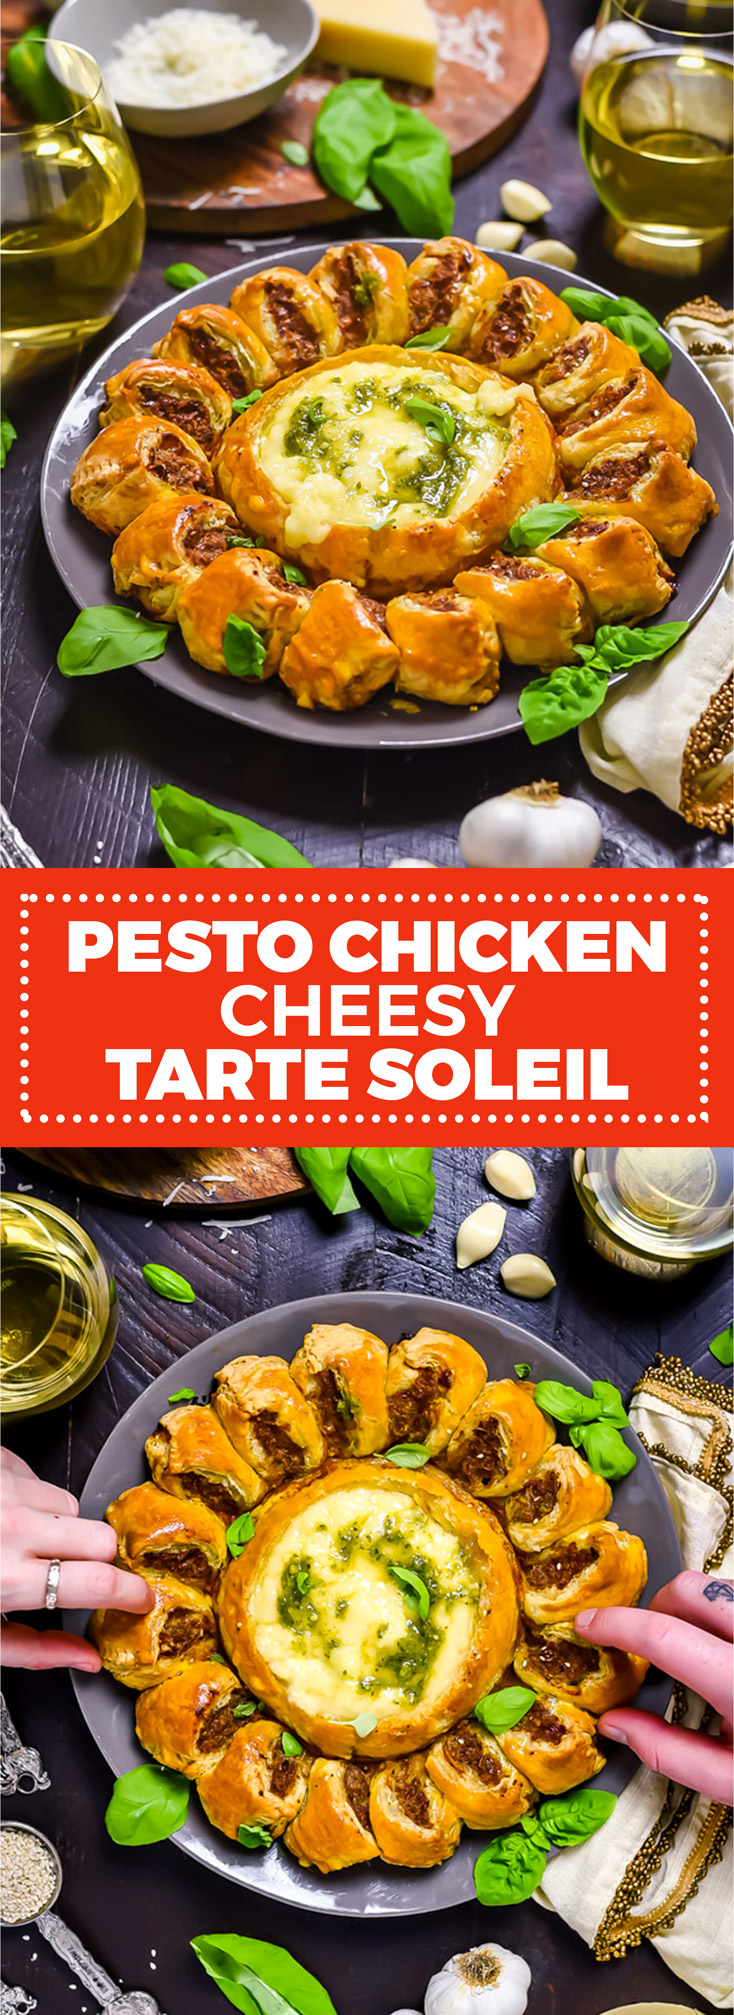 Pesto Chicken Cheesy Tarte Soleil. Baked brie or camembert and pesto-loaded ground chicken are baked in puff pastry to create this pull-apart party appetizer. | hostthetoast.com